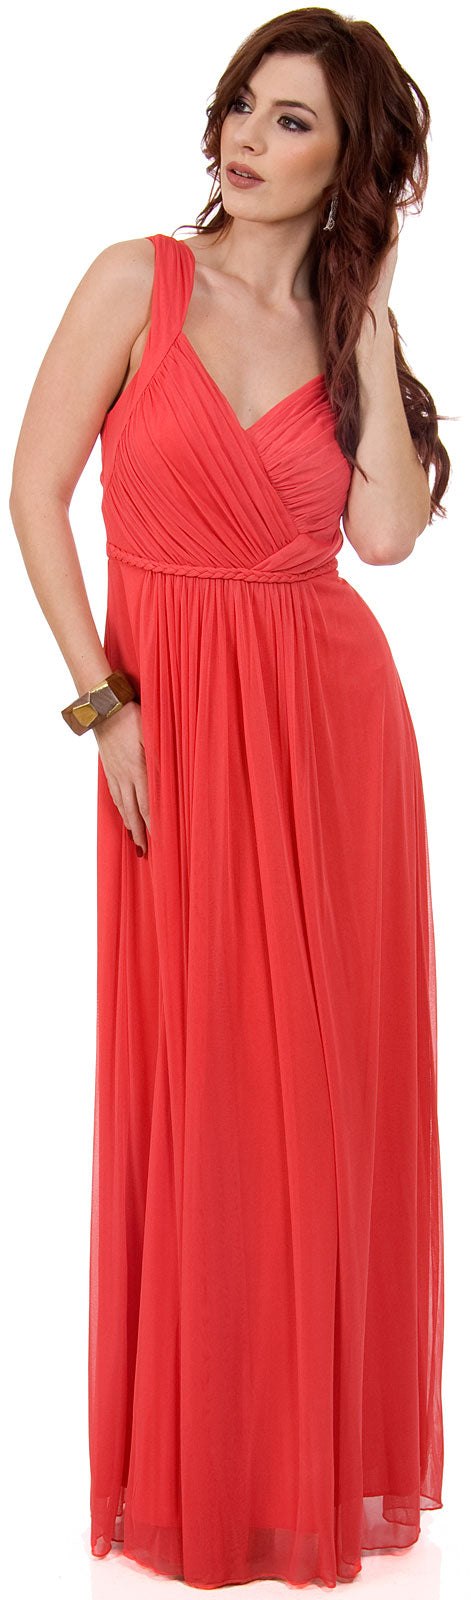 Main image of Braid Accent Ruched Long Formal Bridesmaid Dress